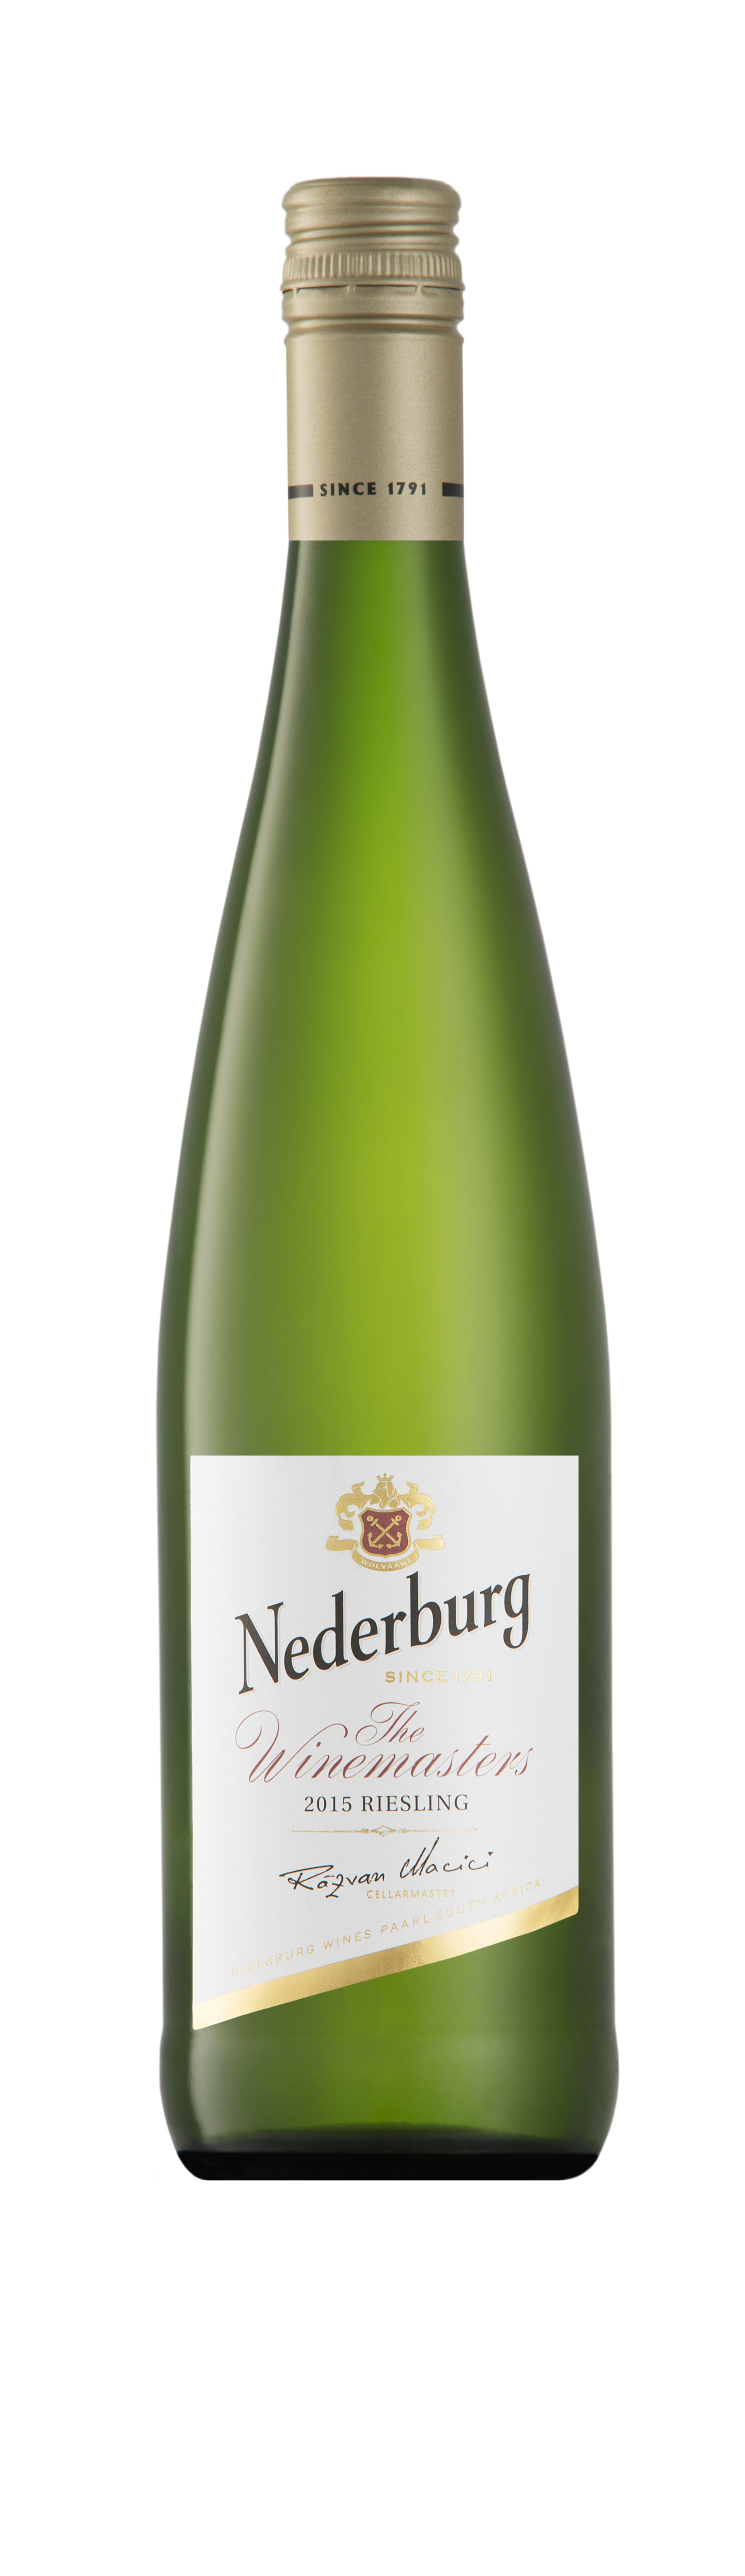 nederburg-wm-riesling-2015-pack-shot-hr